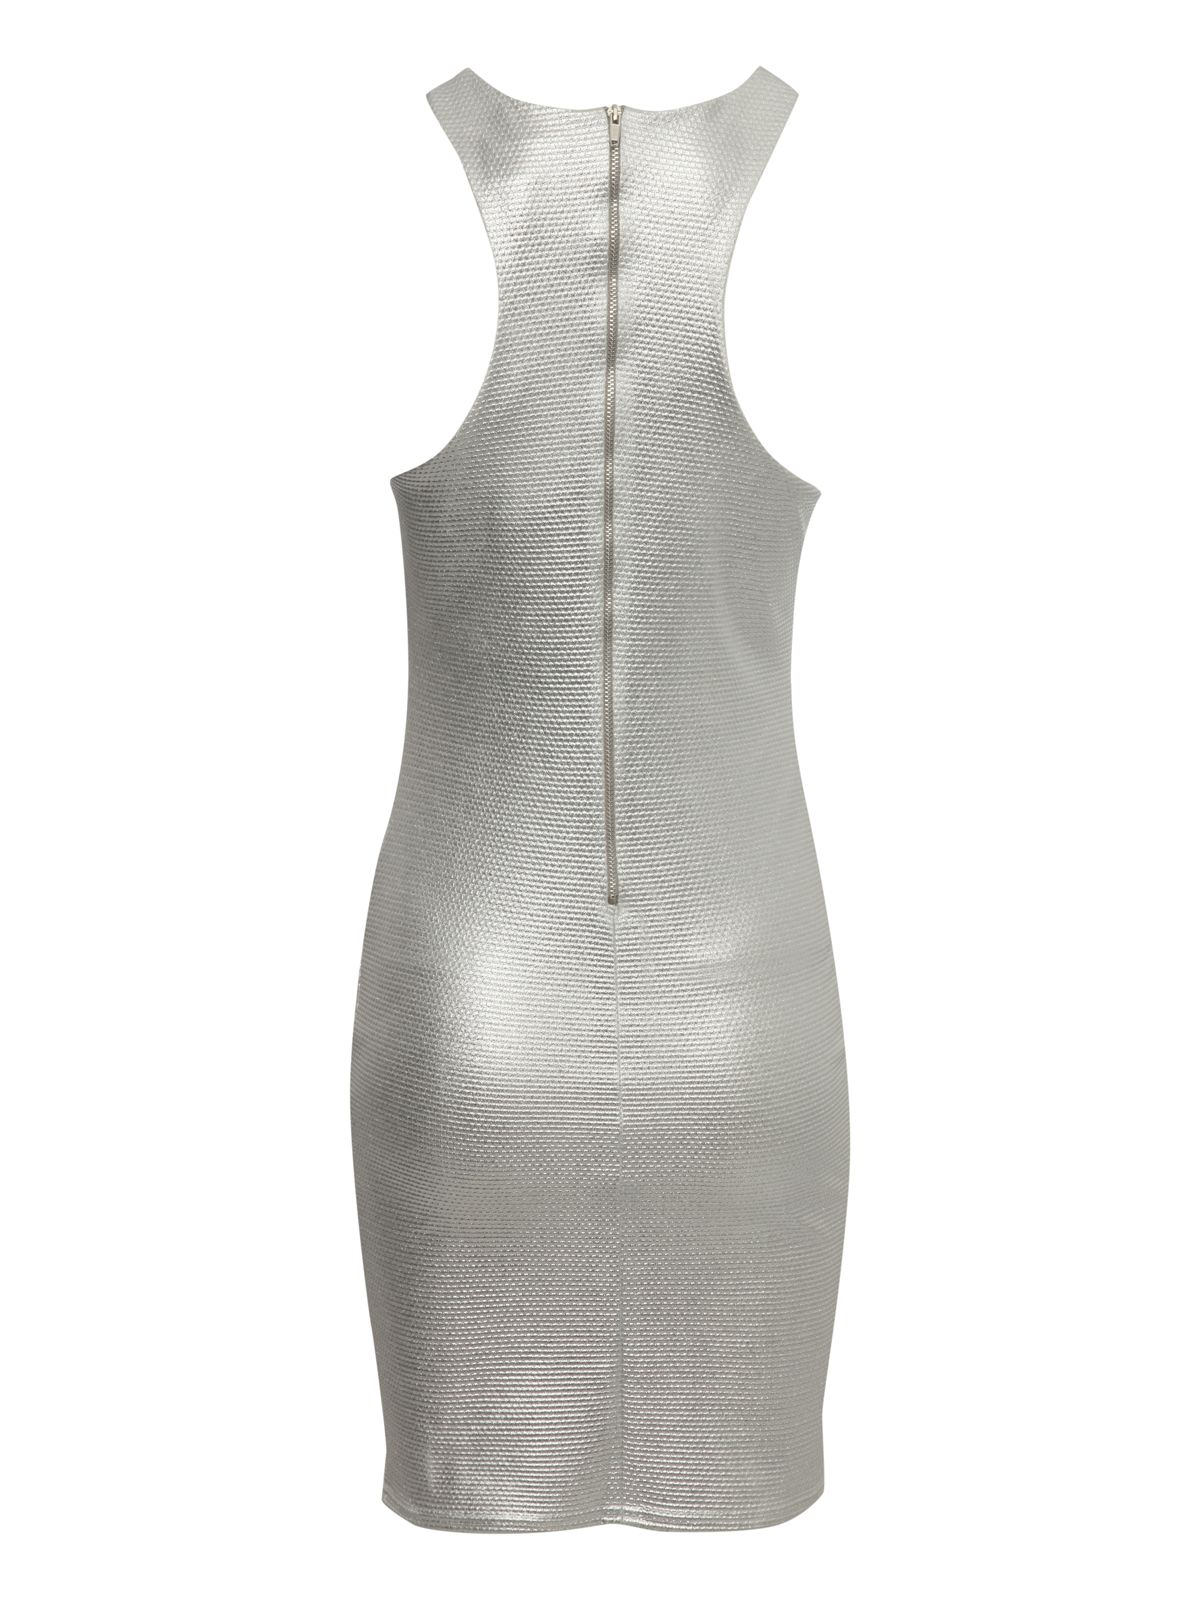 Metallic cut out dress